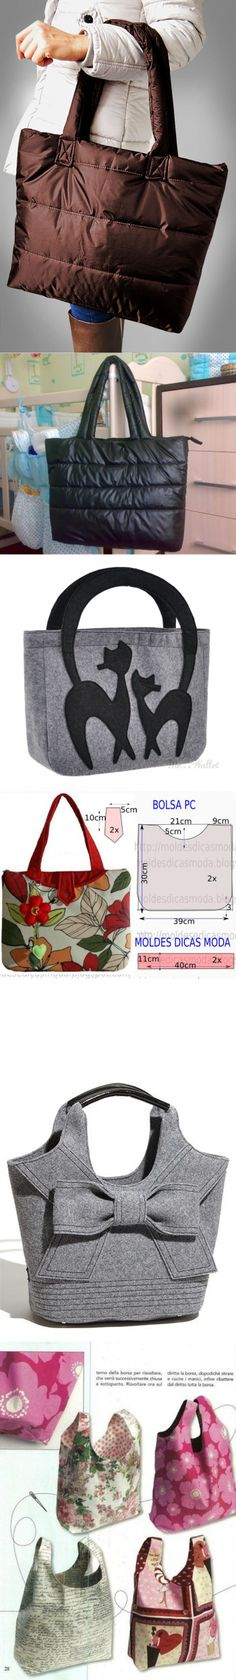 Search on Postila: patterns of bags